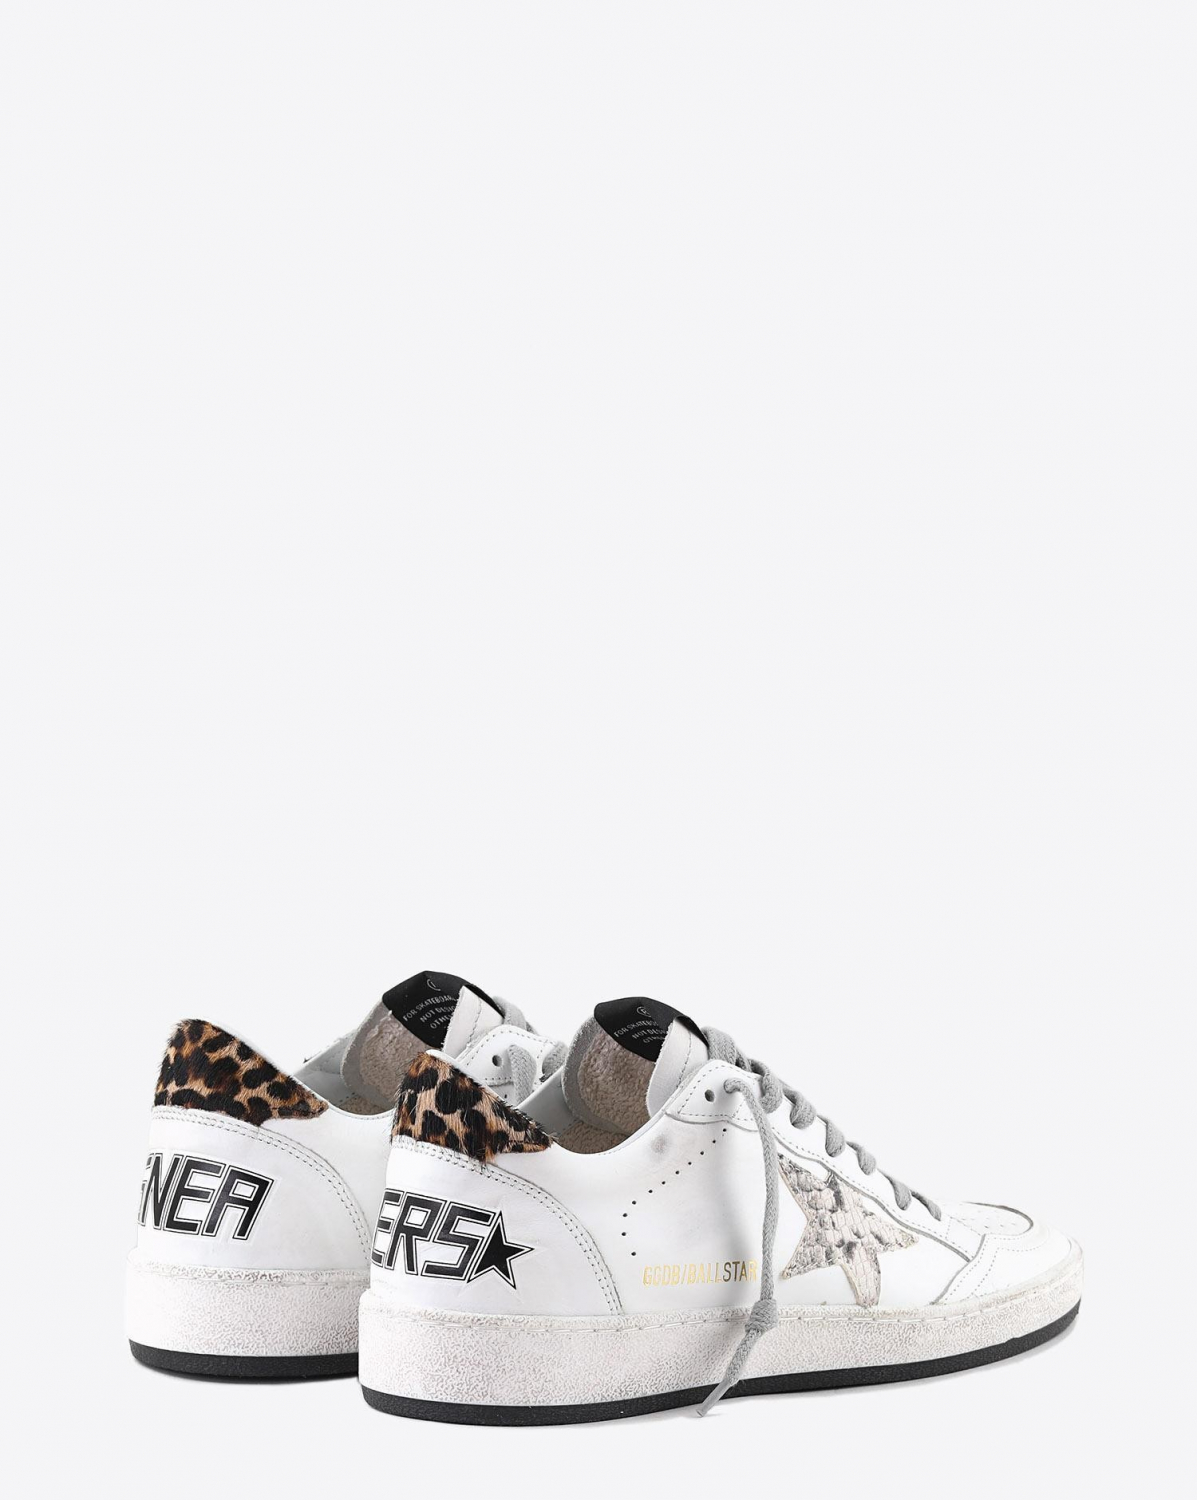 Golden Goose Woman Pré-Collection Sneakers Ball Star - White Leather - Pythone Rock Star